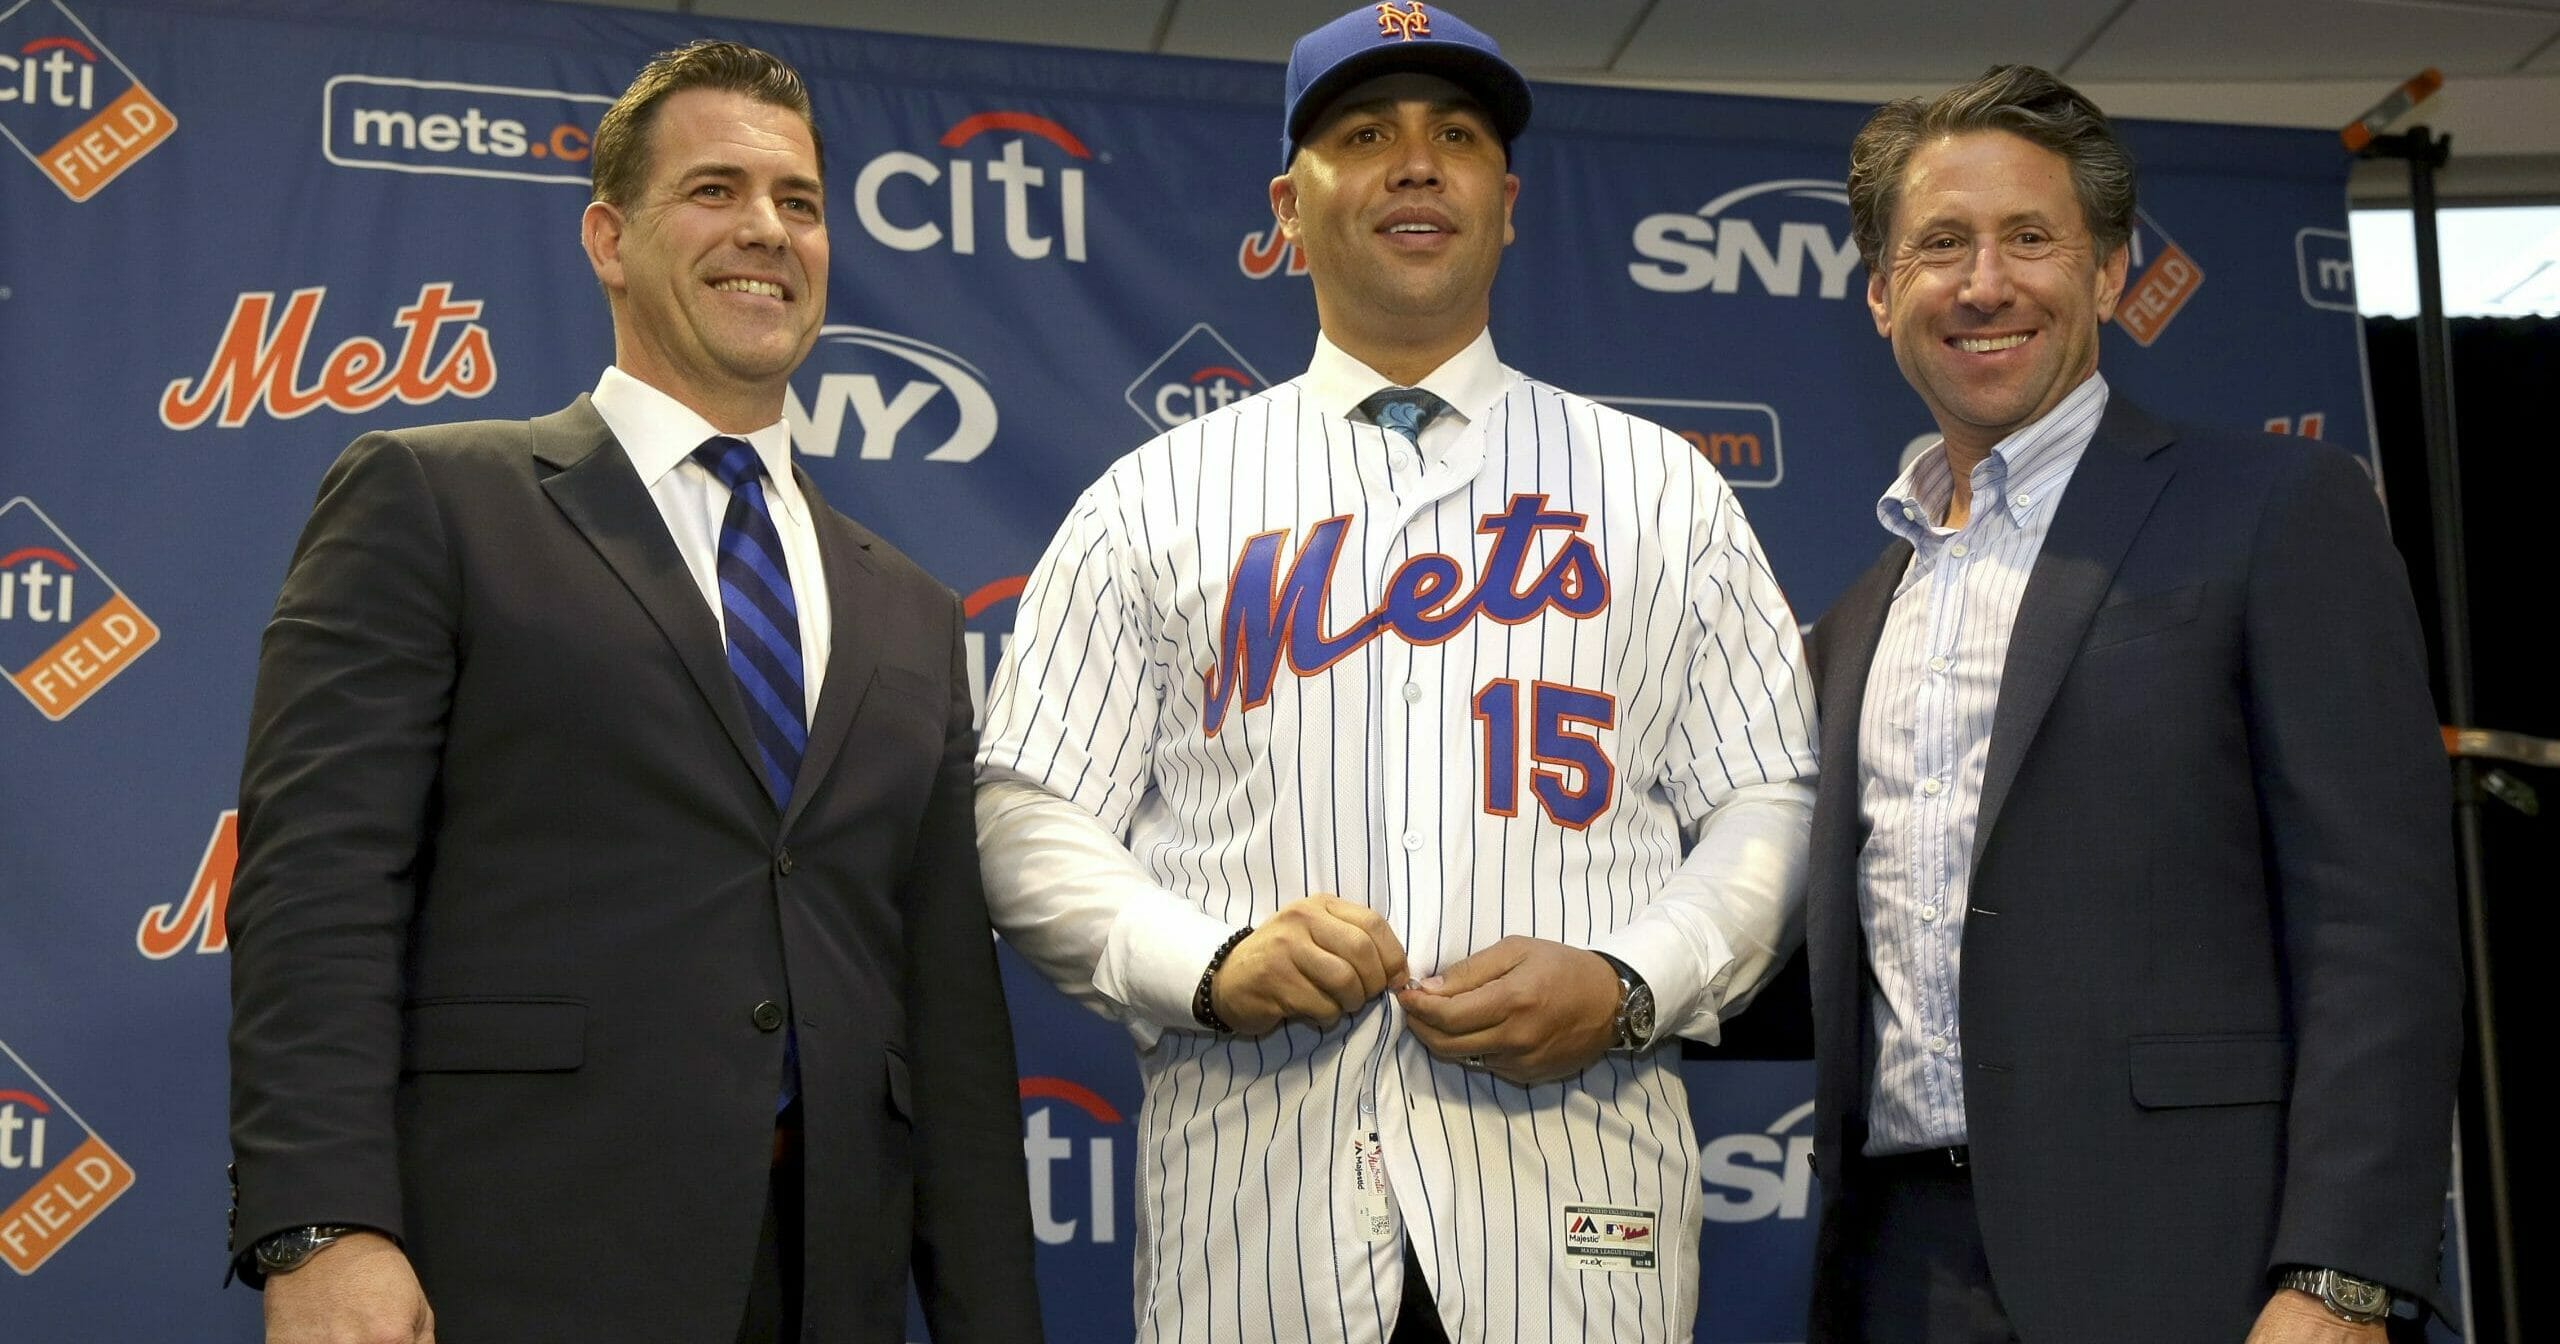 In this Nov. 4, 2019, file photo, then-New York Mets manager Carlos Beltran, center, poses for a picture with general manager Brodie Van Wagenen, left, and Mets COO Jeff Wilpon during a news conference at Citi Field in New York. Beltran is out as manager of the Mets. The team announced the move Jan. 16, 2020.